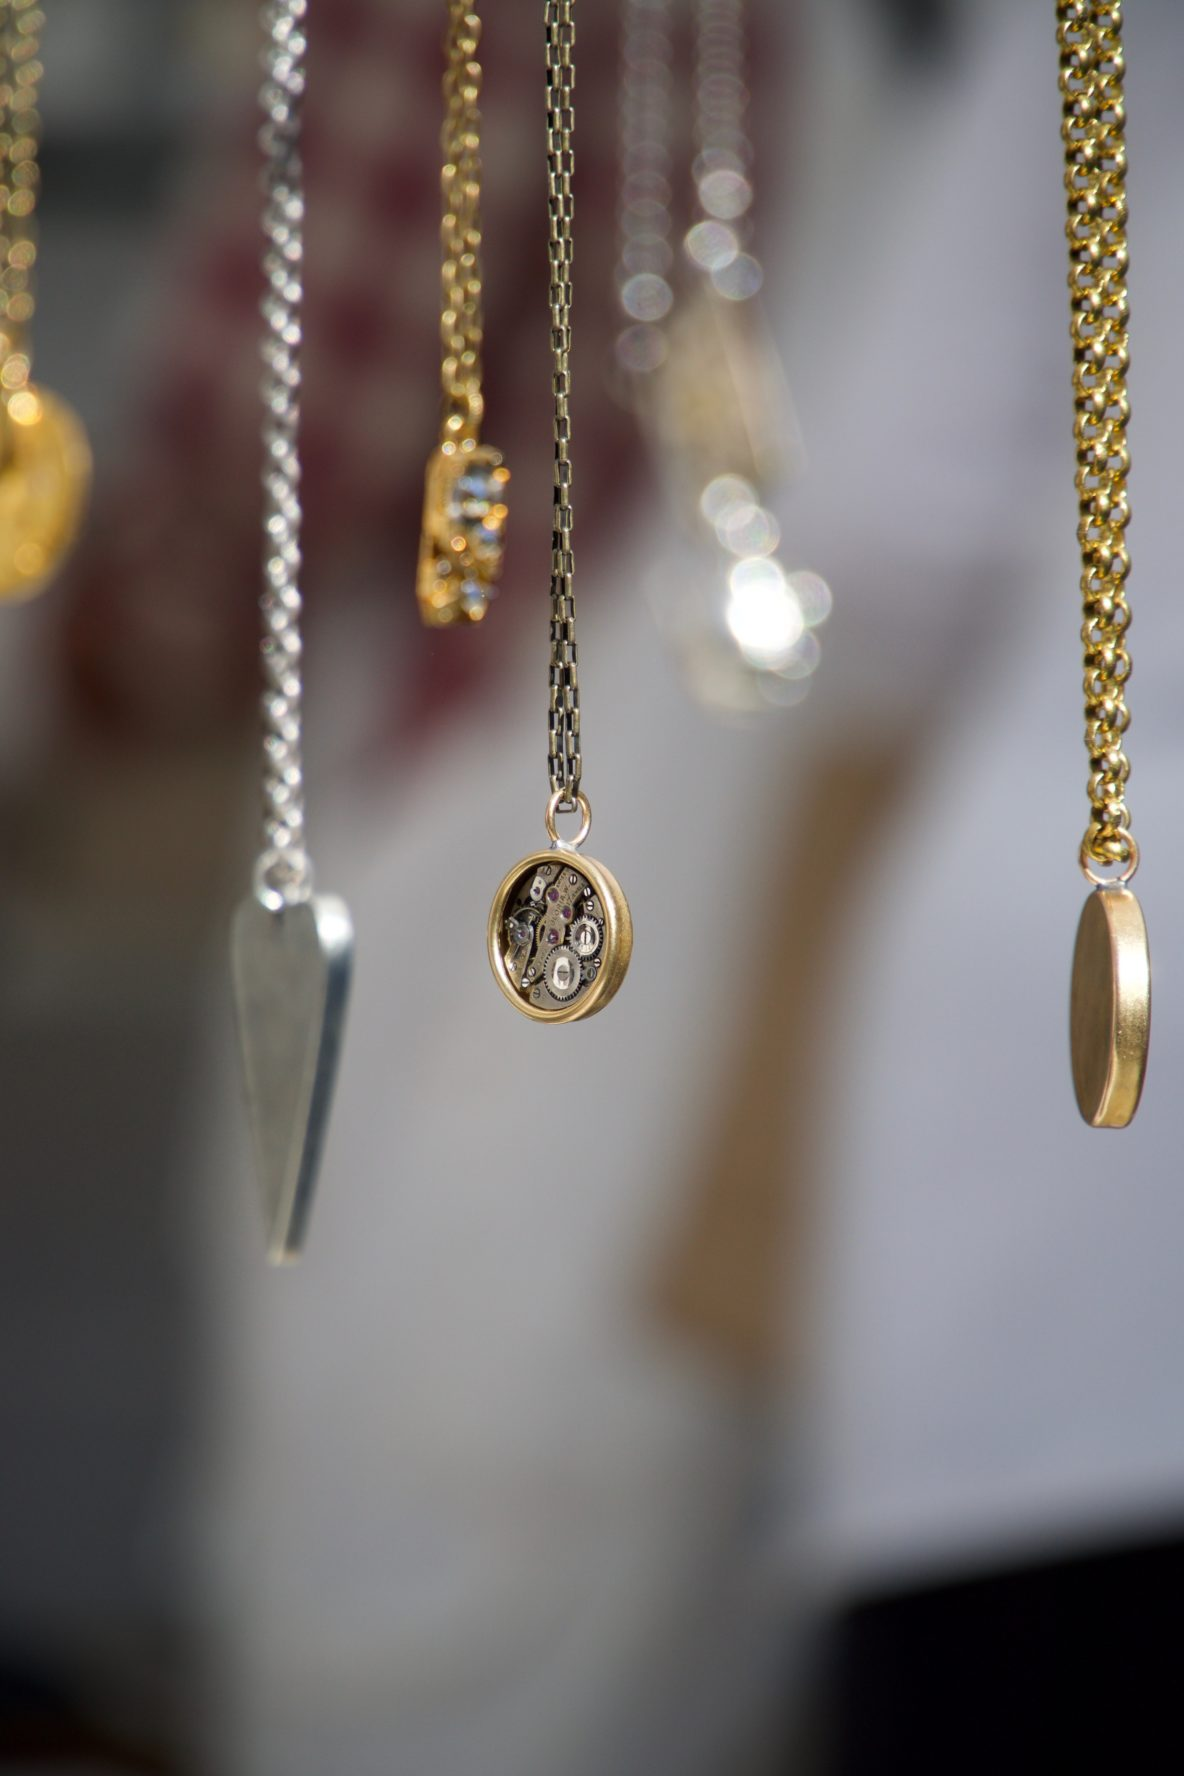 tips and advice on how not to clean necklaces